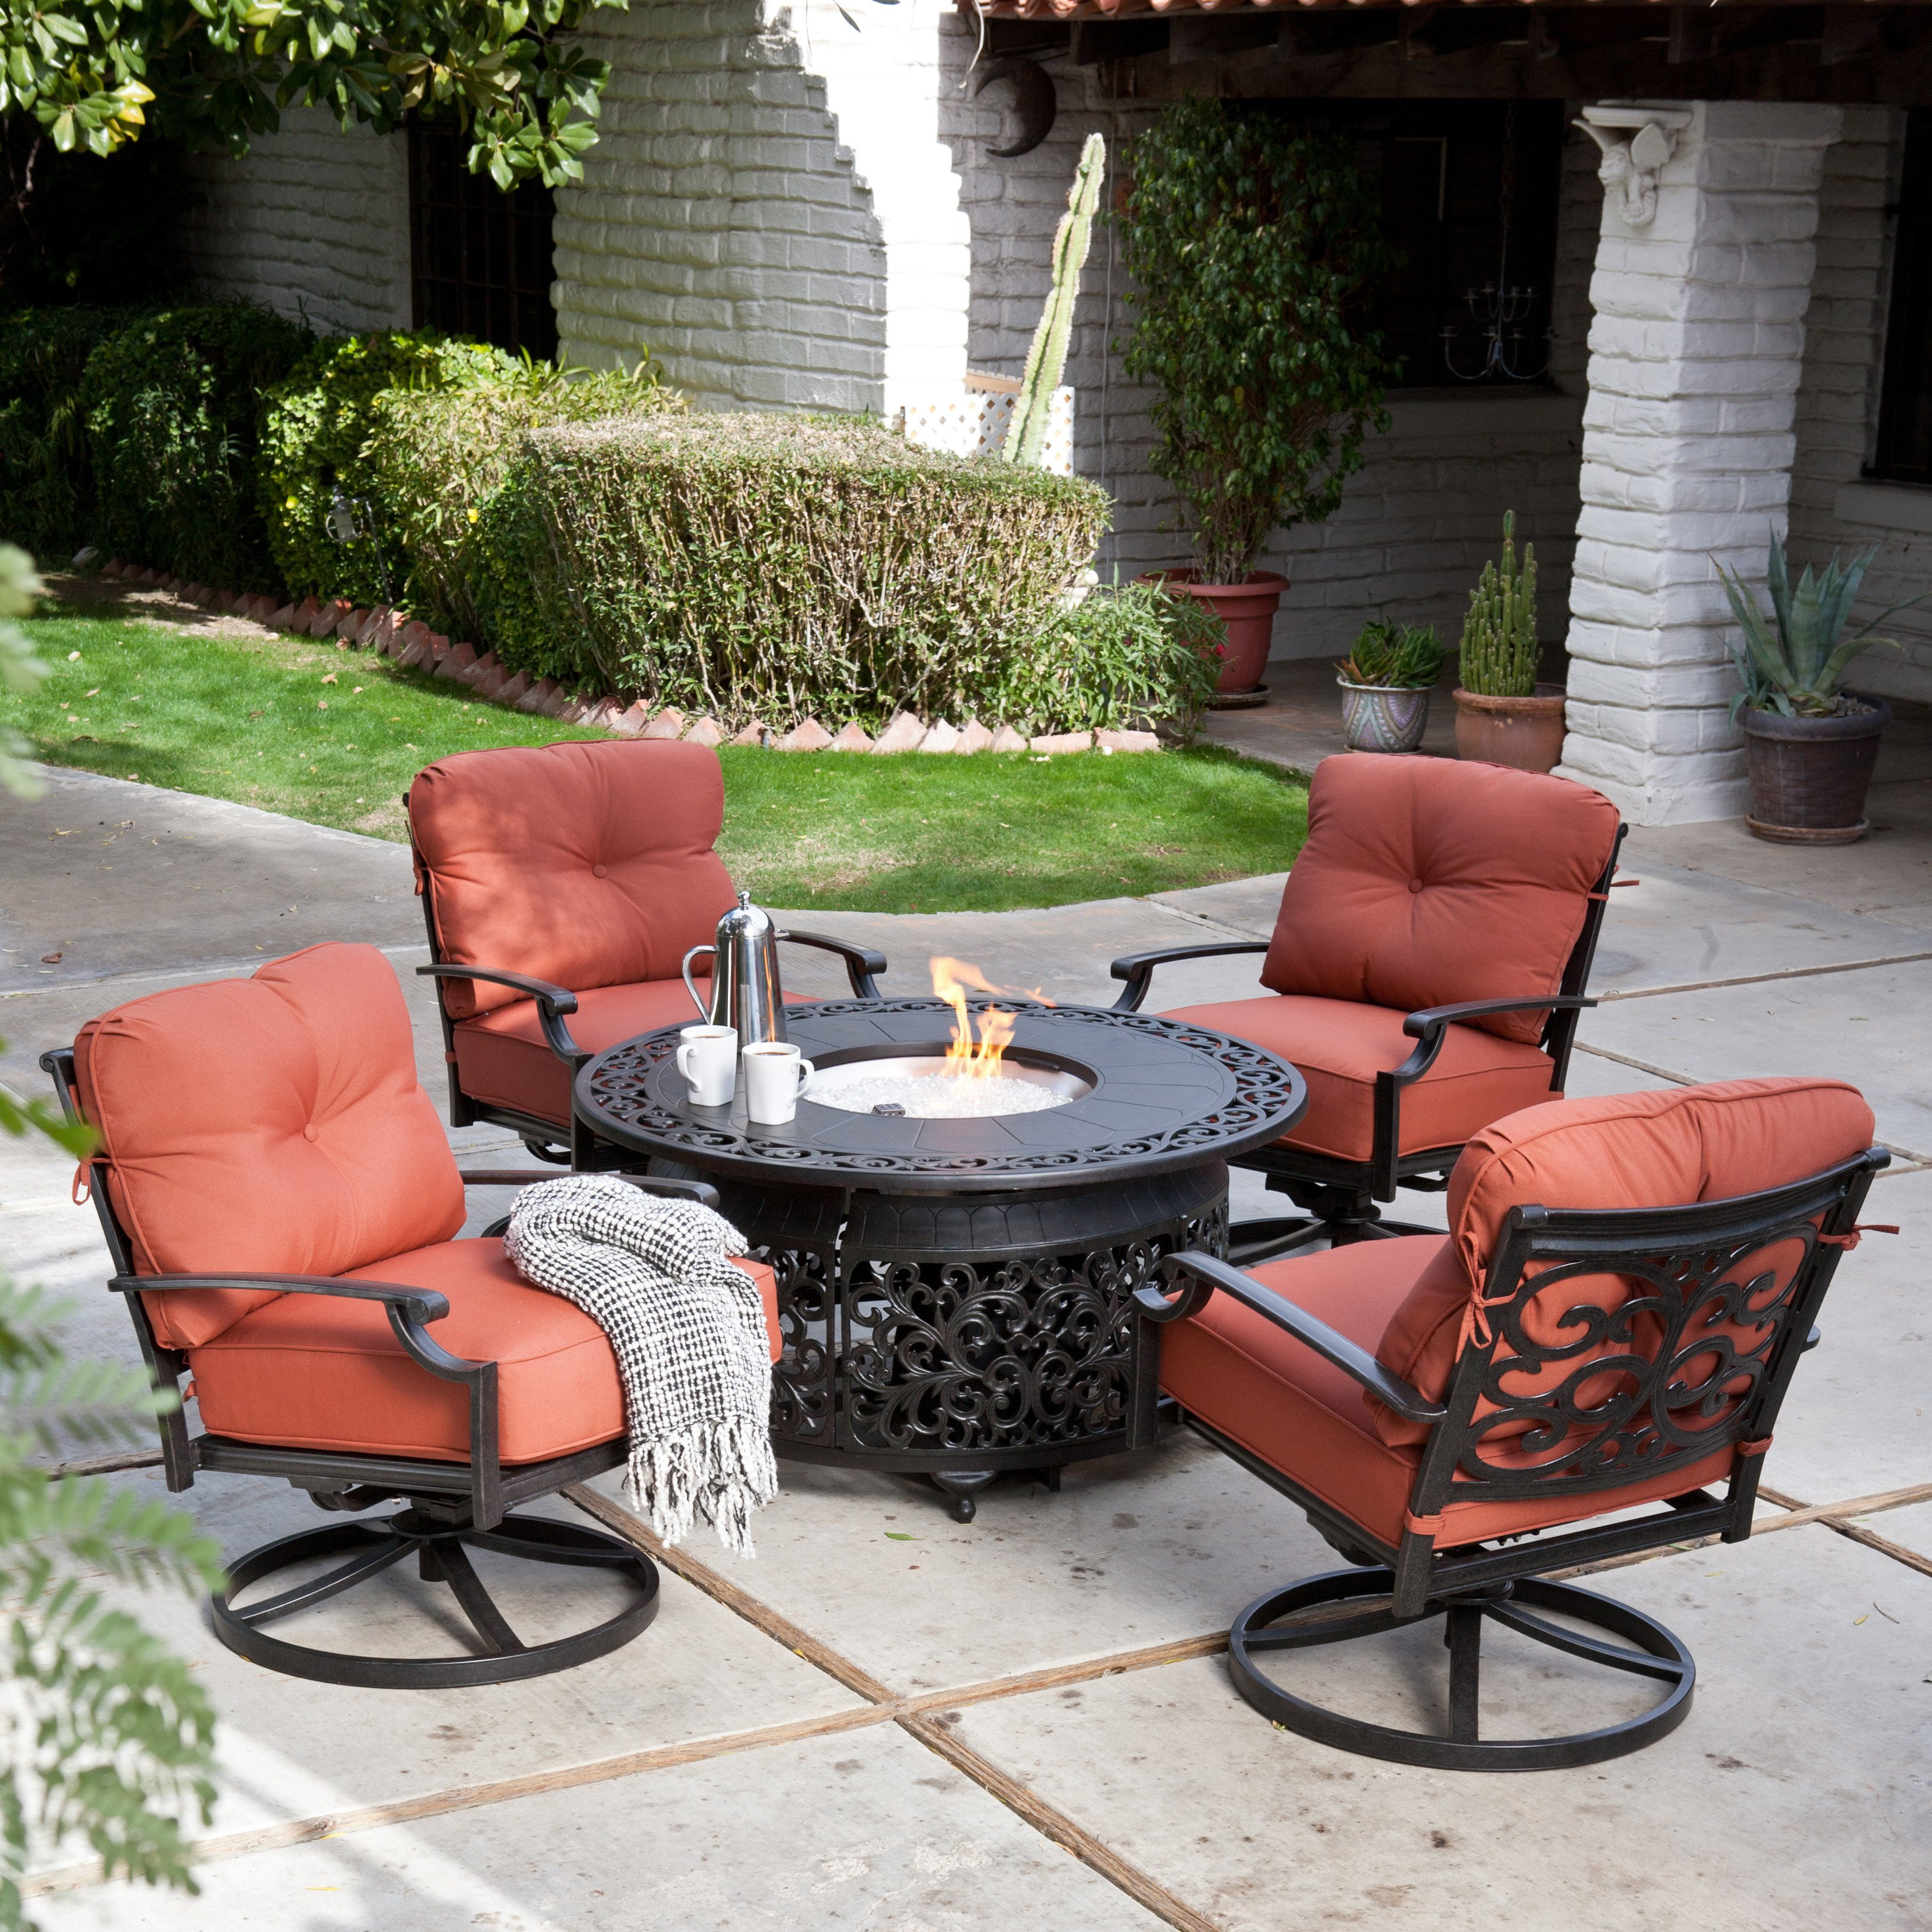 Best ideas about Outdoor Fire Pit Sets . Save or Pin Belham Living San Miguel Cast Aluminum Fire Pit Chat Set Now.